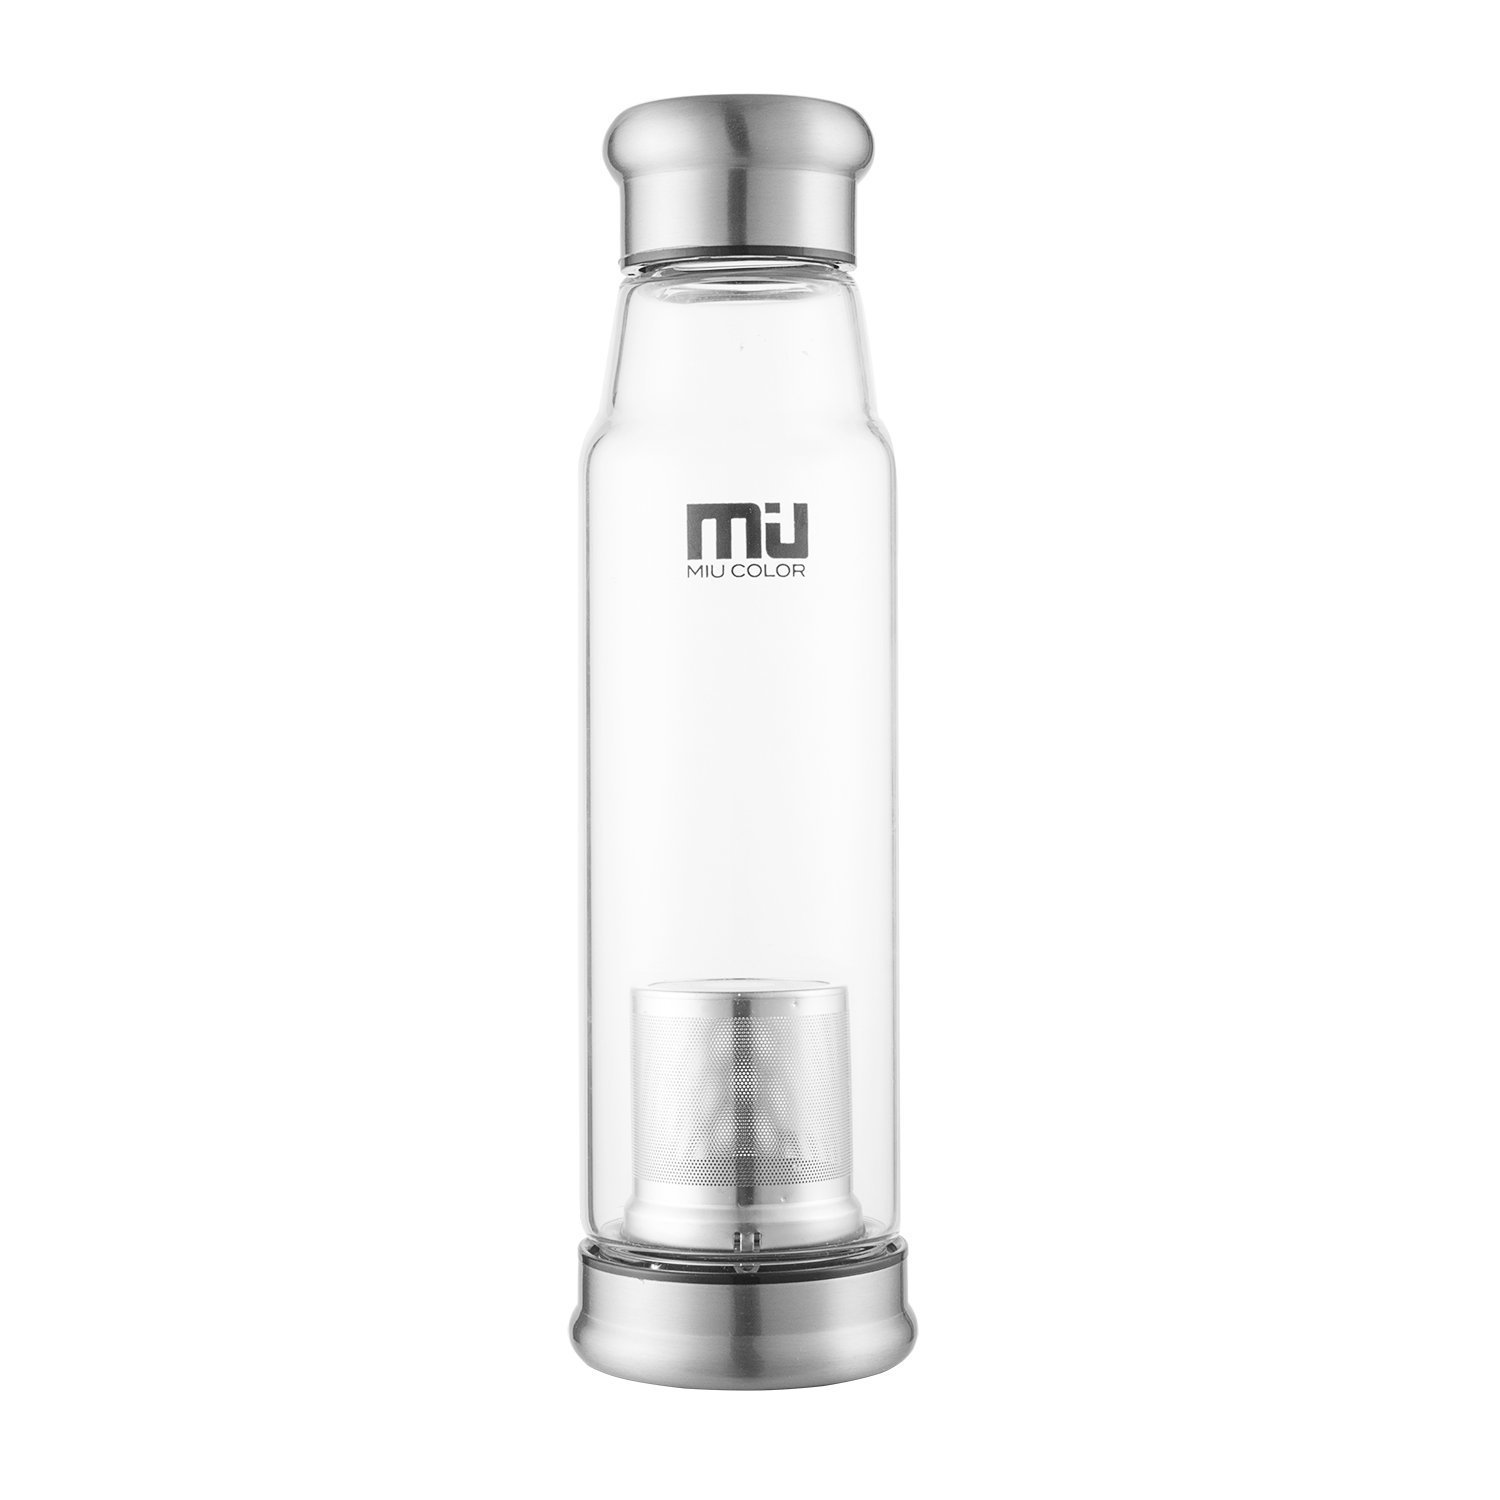 MIU color® elegante portátil Botella de cristal capacidad 700 ml mayor-Taza con filtro de té y funda de nailon para coche, color azul oscuro: Amazon.es: ...